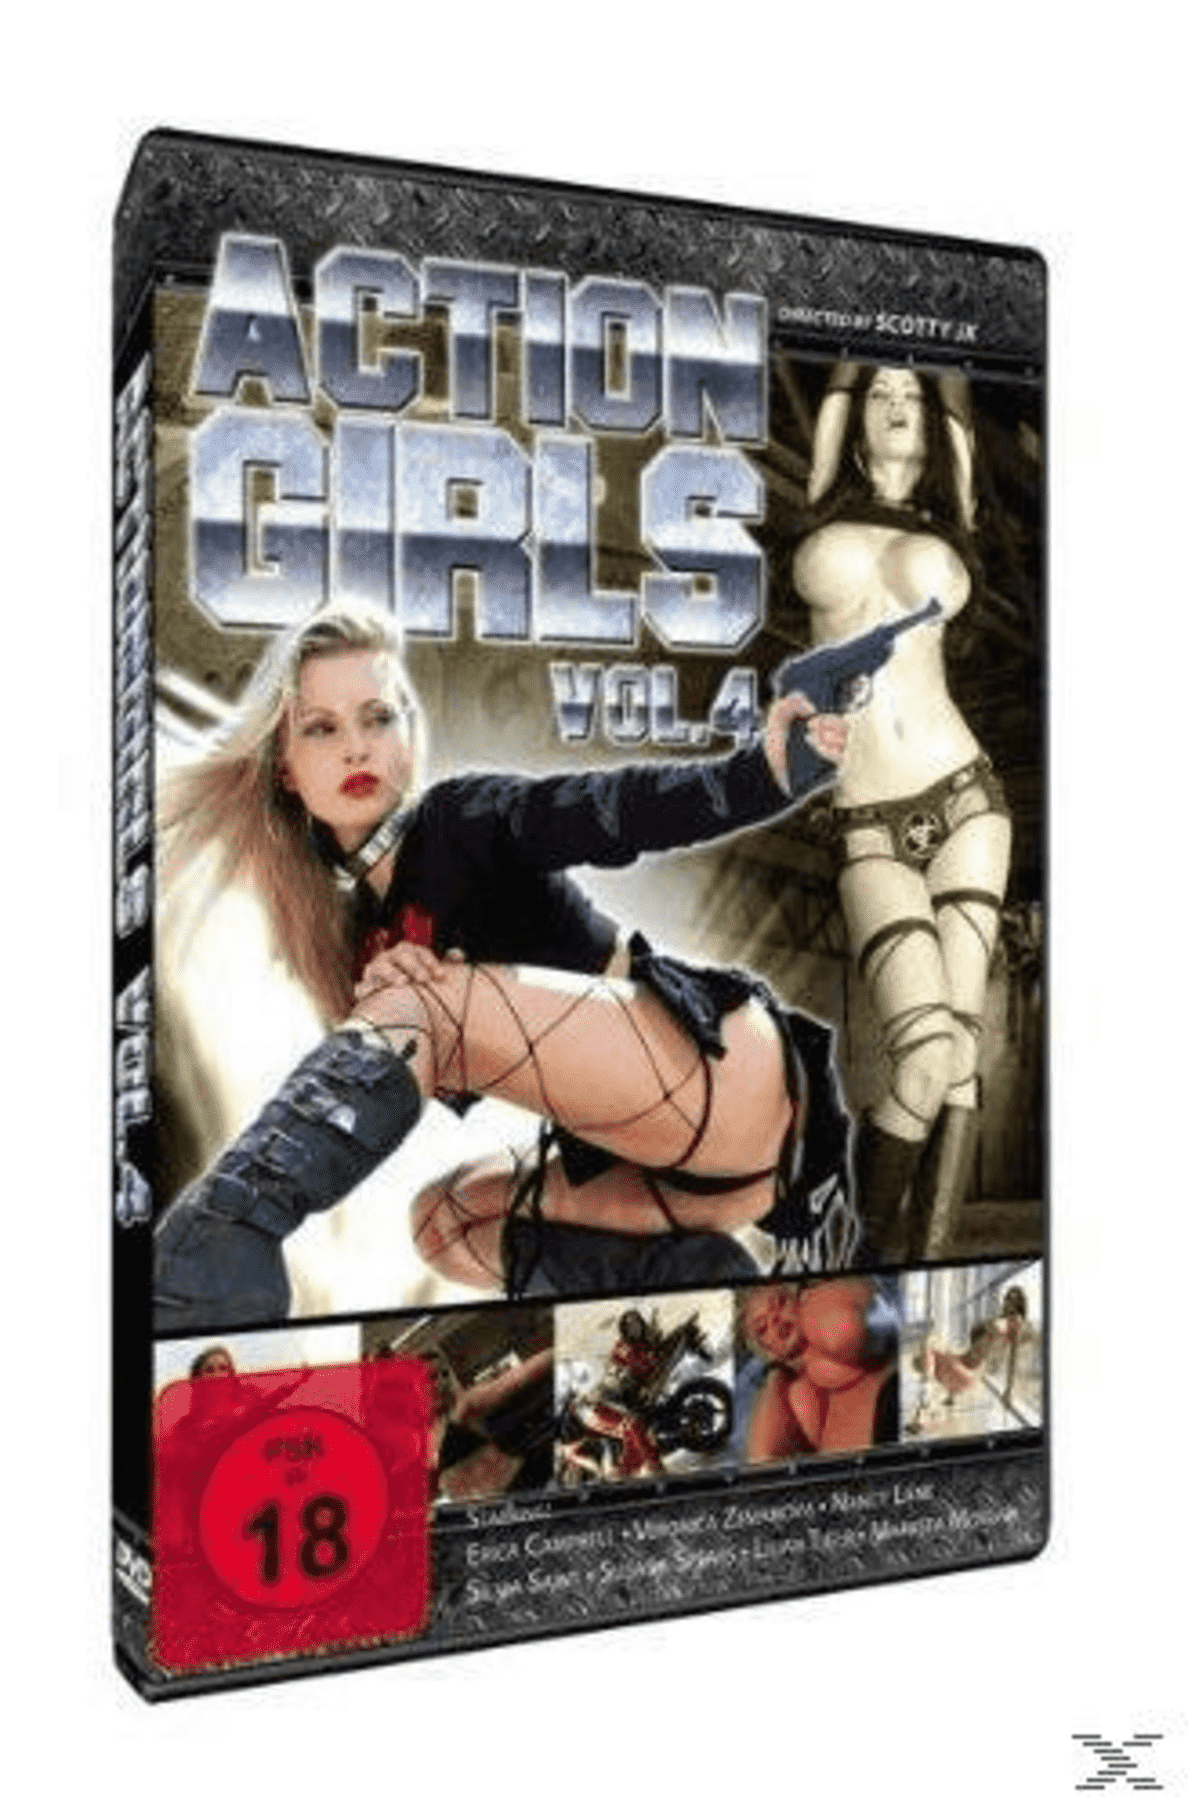 ACTIONGIRLS 4 auf DVD